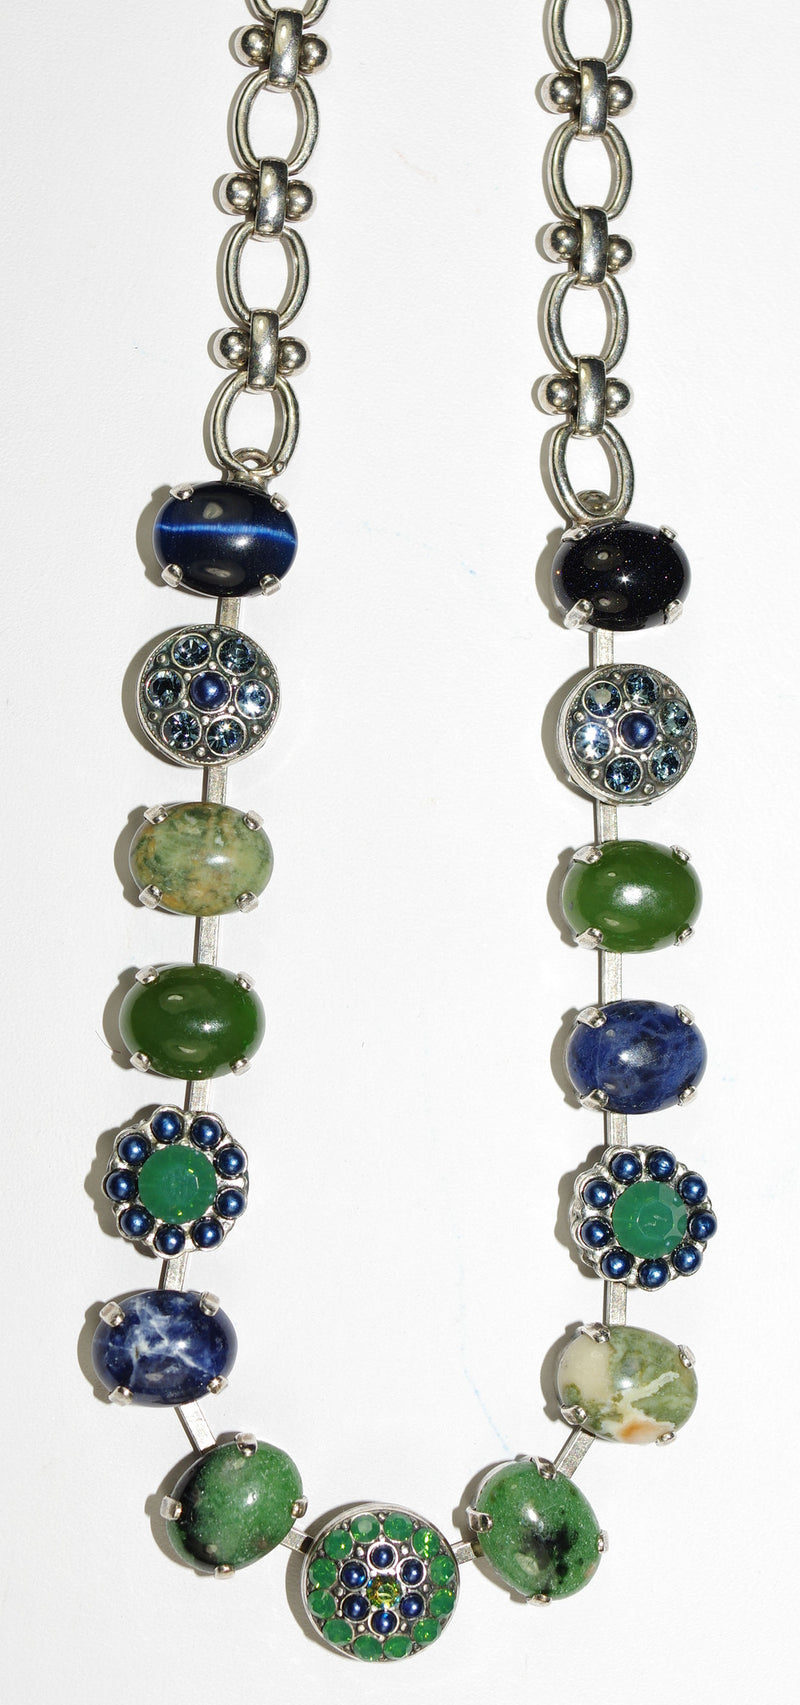 "MARIANA NECKLACE EMERALD CITY: green, blue stones in silver setting, 20"" adjustable chain"